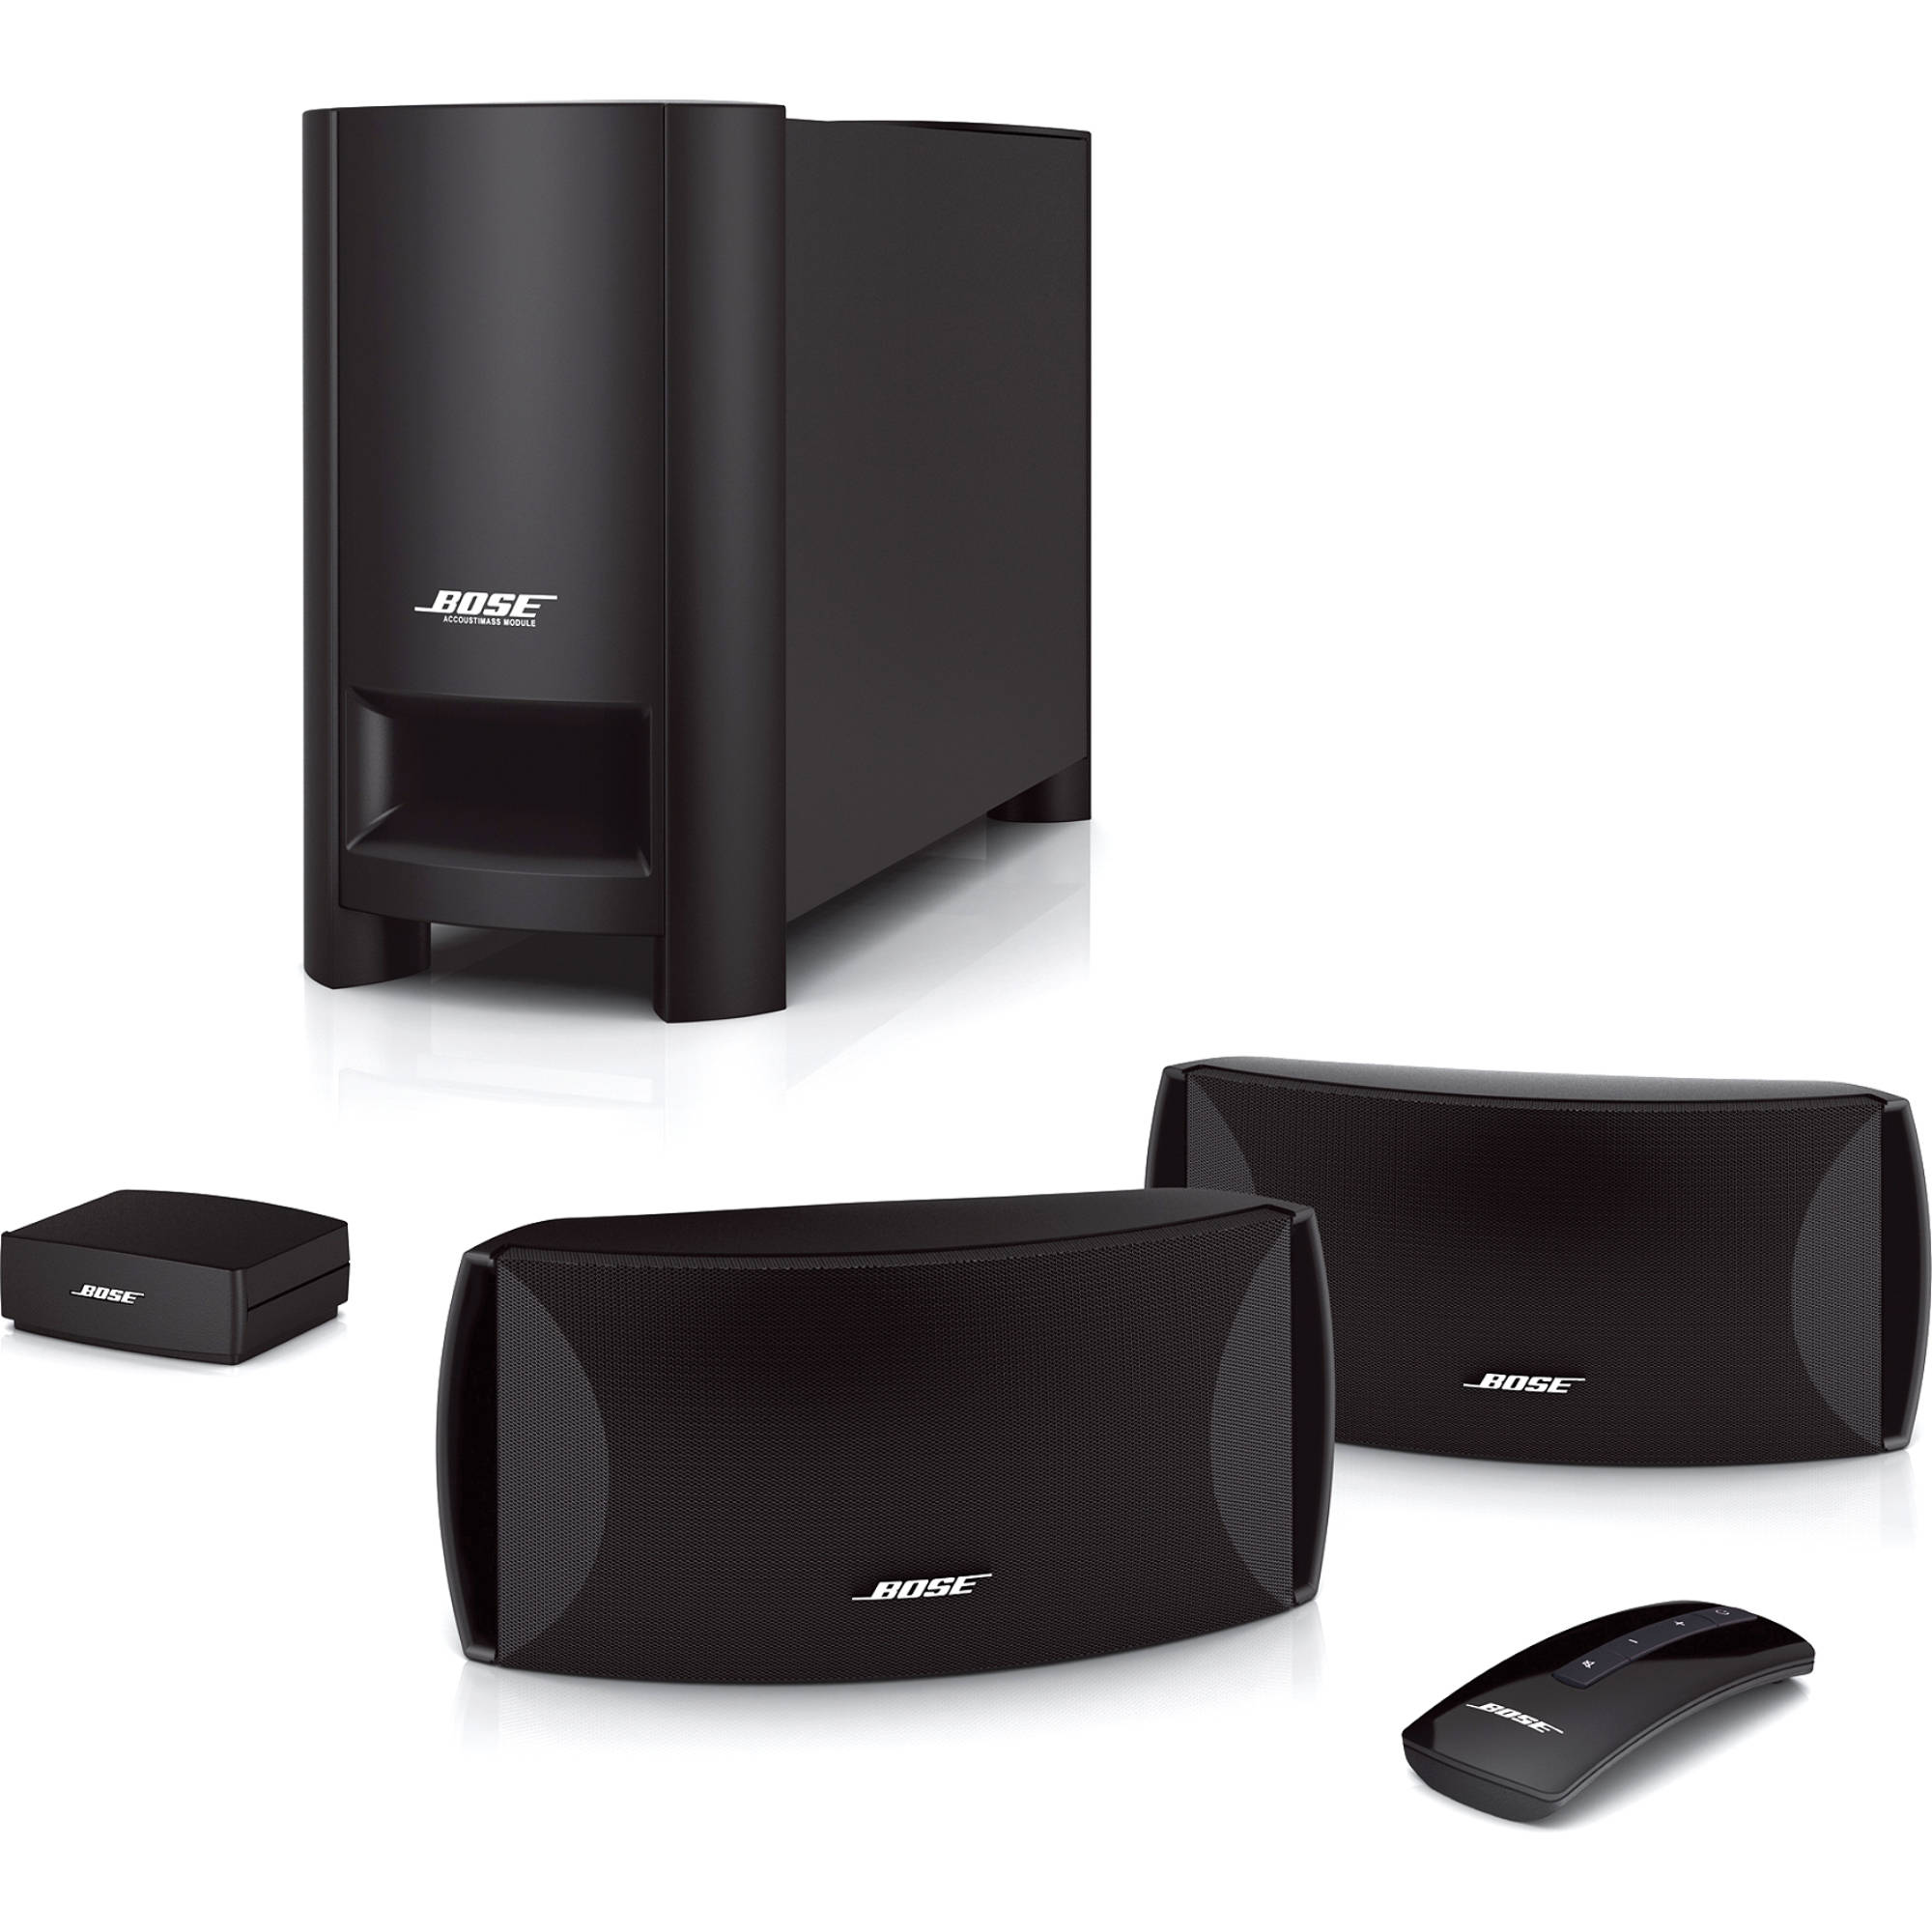 bose cinemate series ii digital home theater speaker 318842 1100 rh bhphotovideo com Bose CineMate Series II Setup Bose CineMate Series II Parts